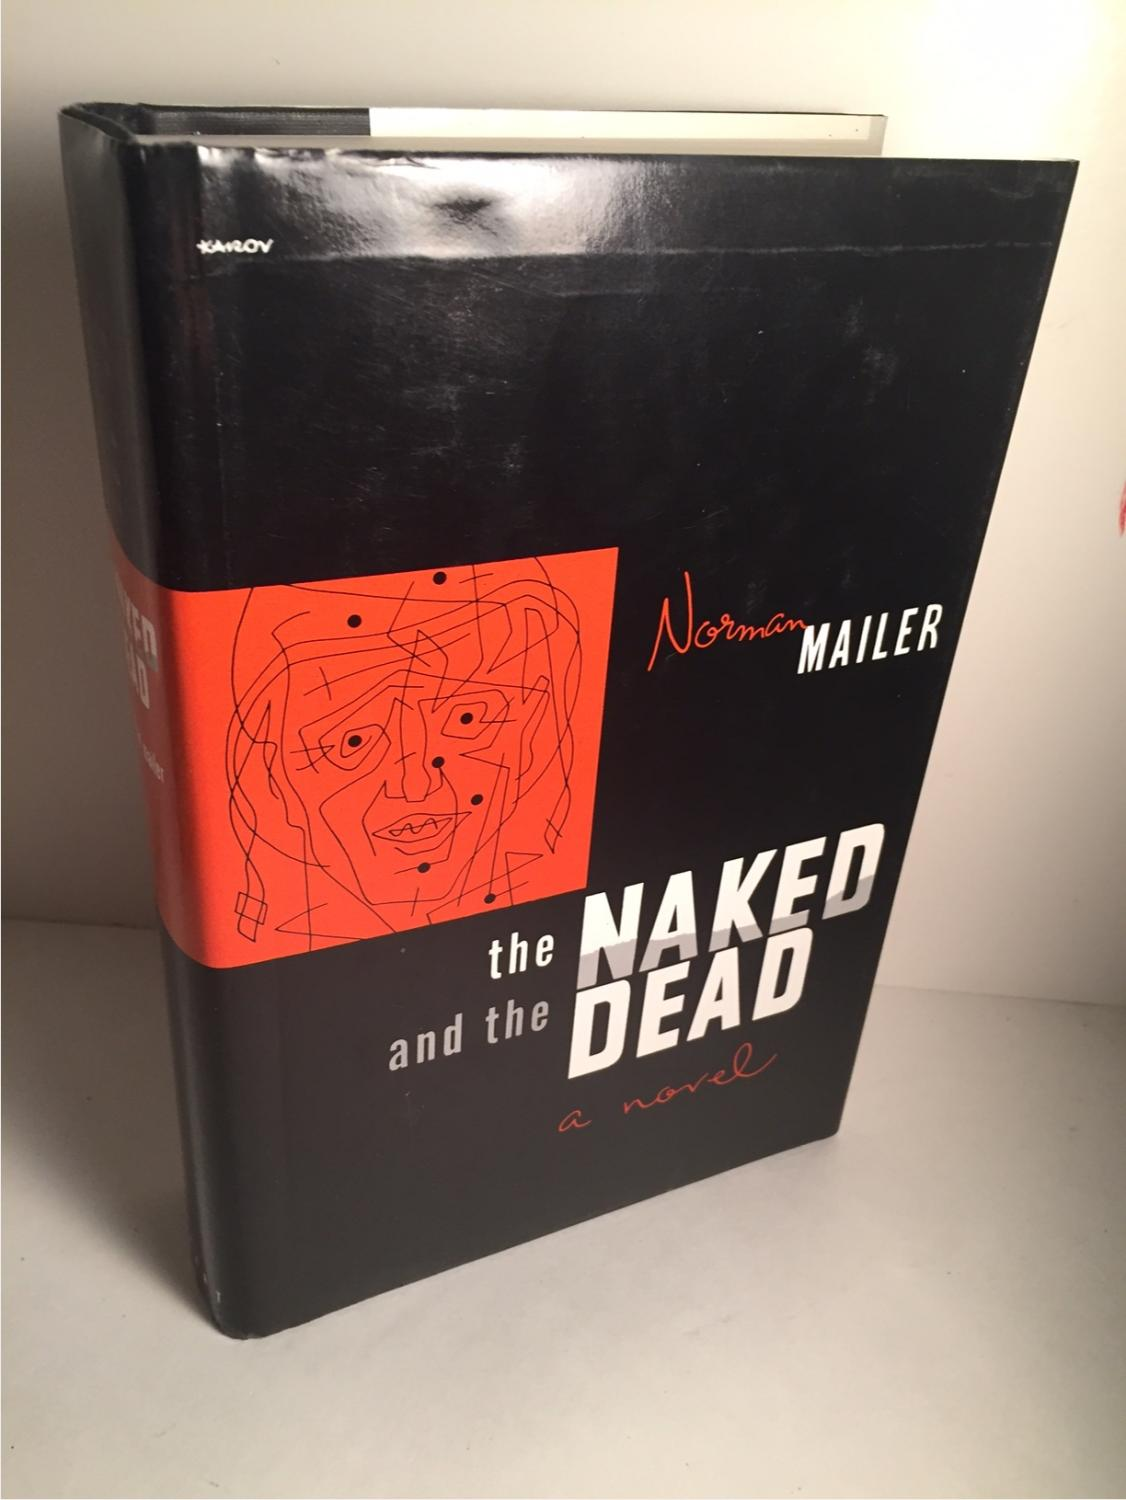 Norman Mailer naked and the dead first issue